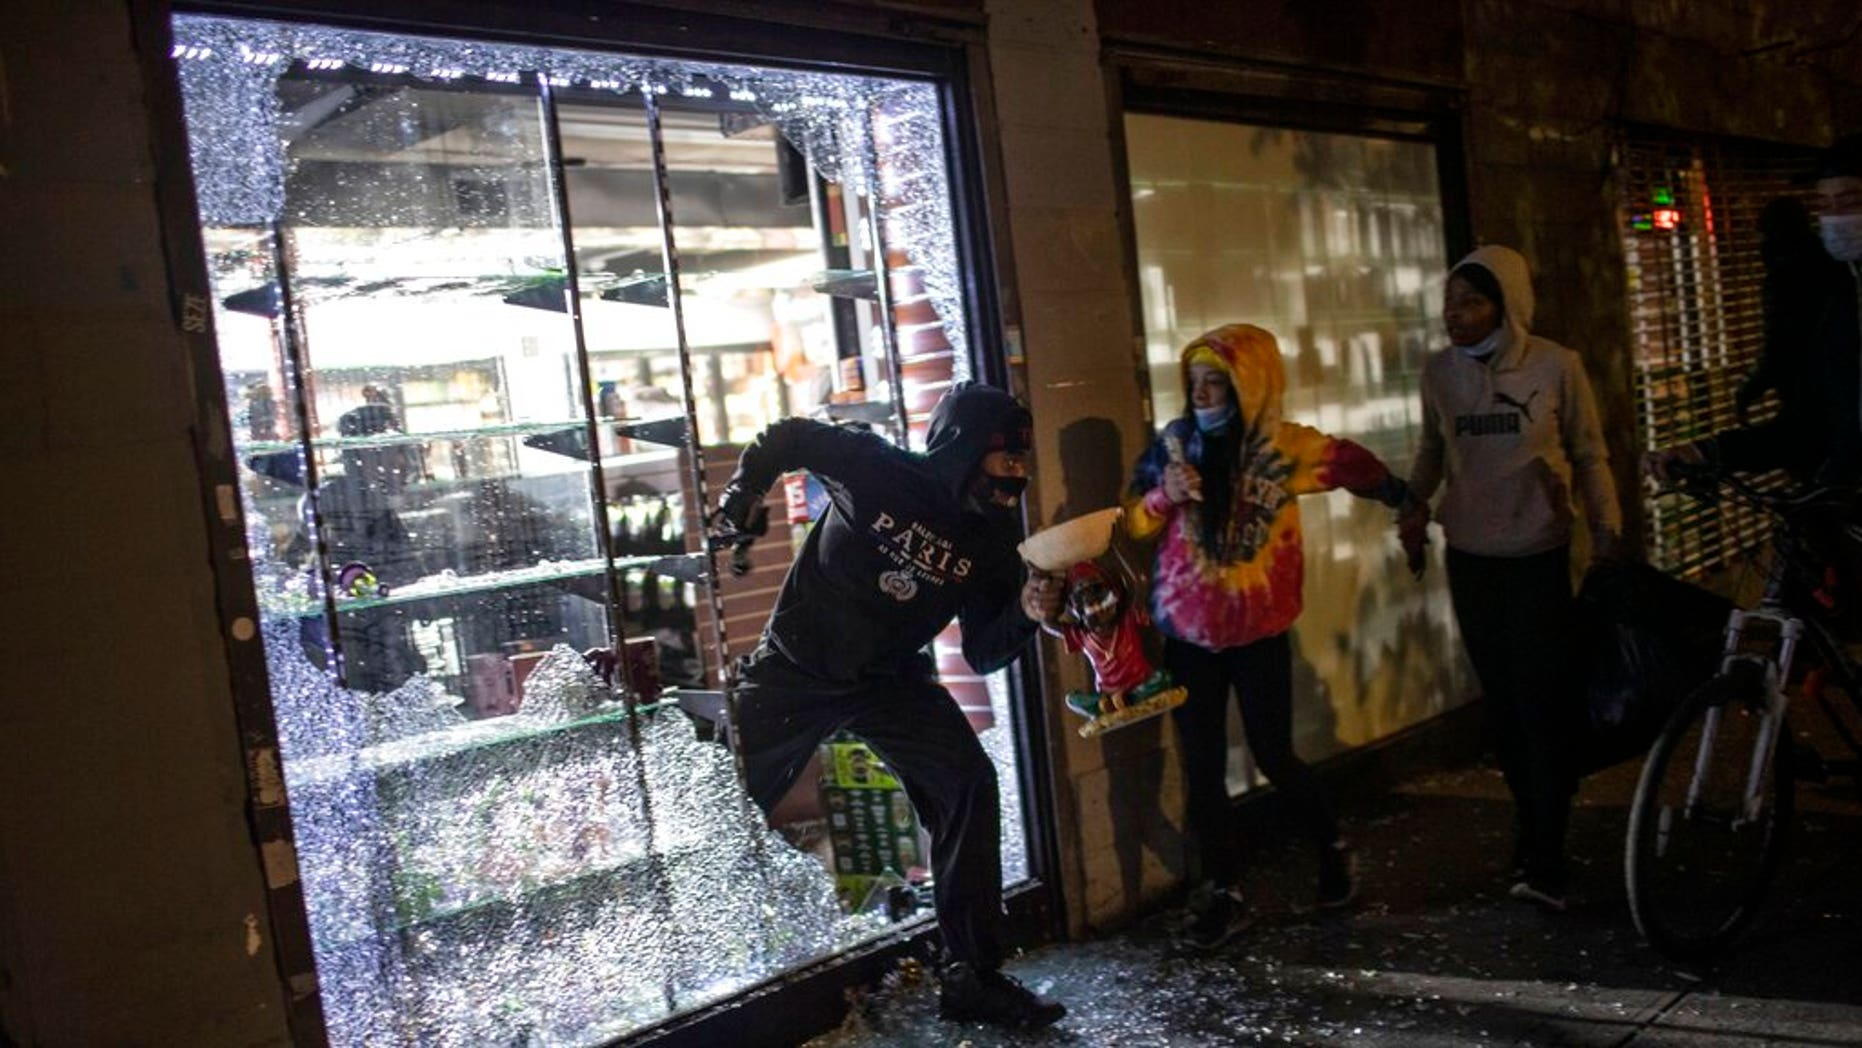 NYC DA drops most looting cases from summer 2020 riots, prioritizing Trump probe: report